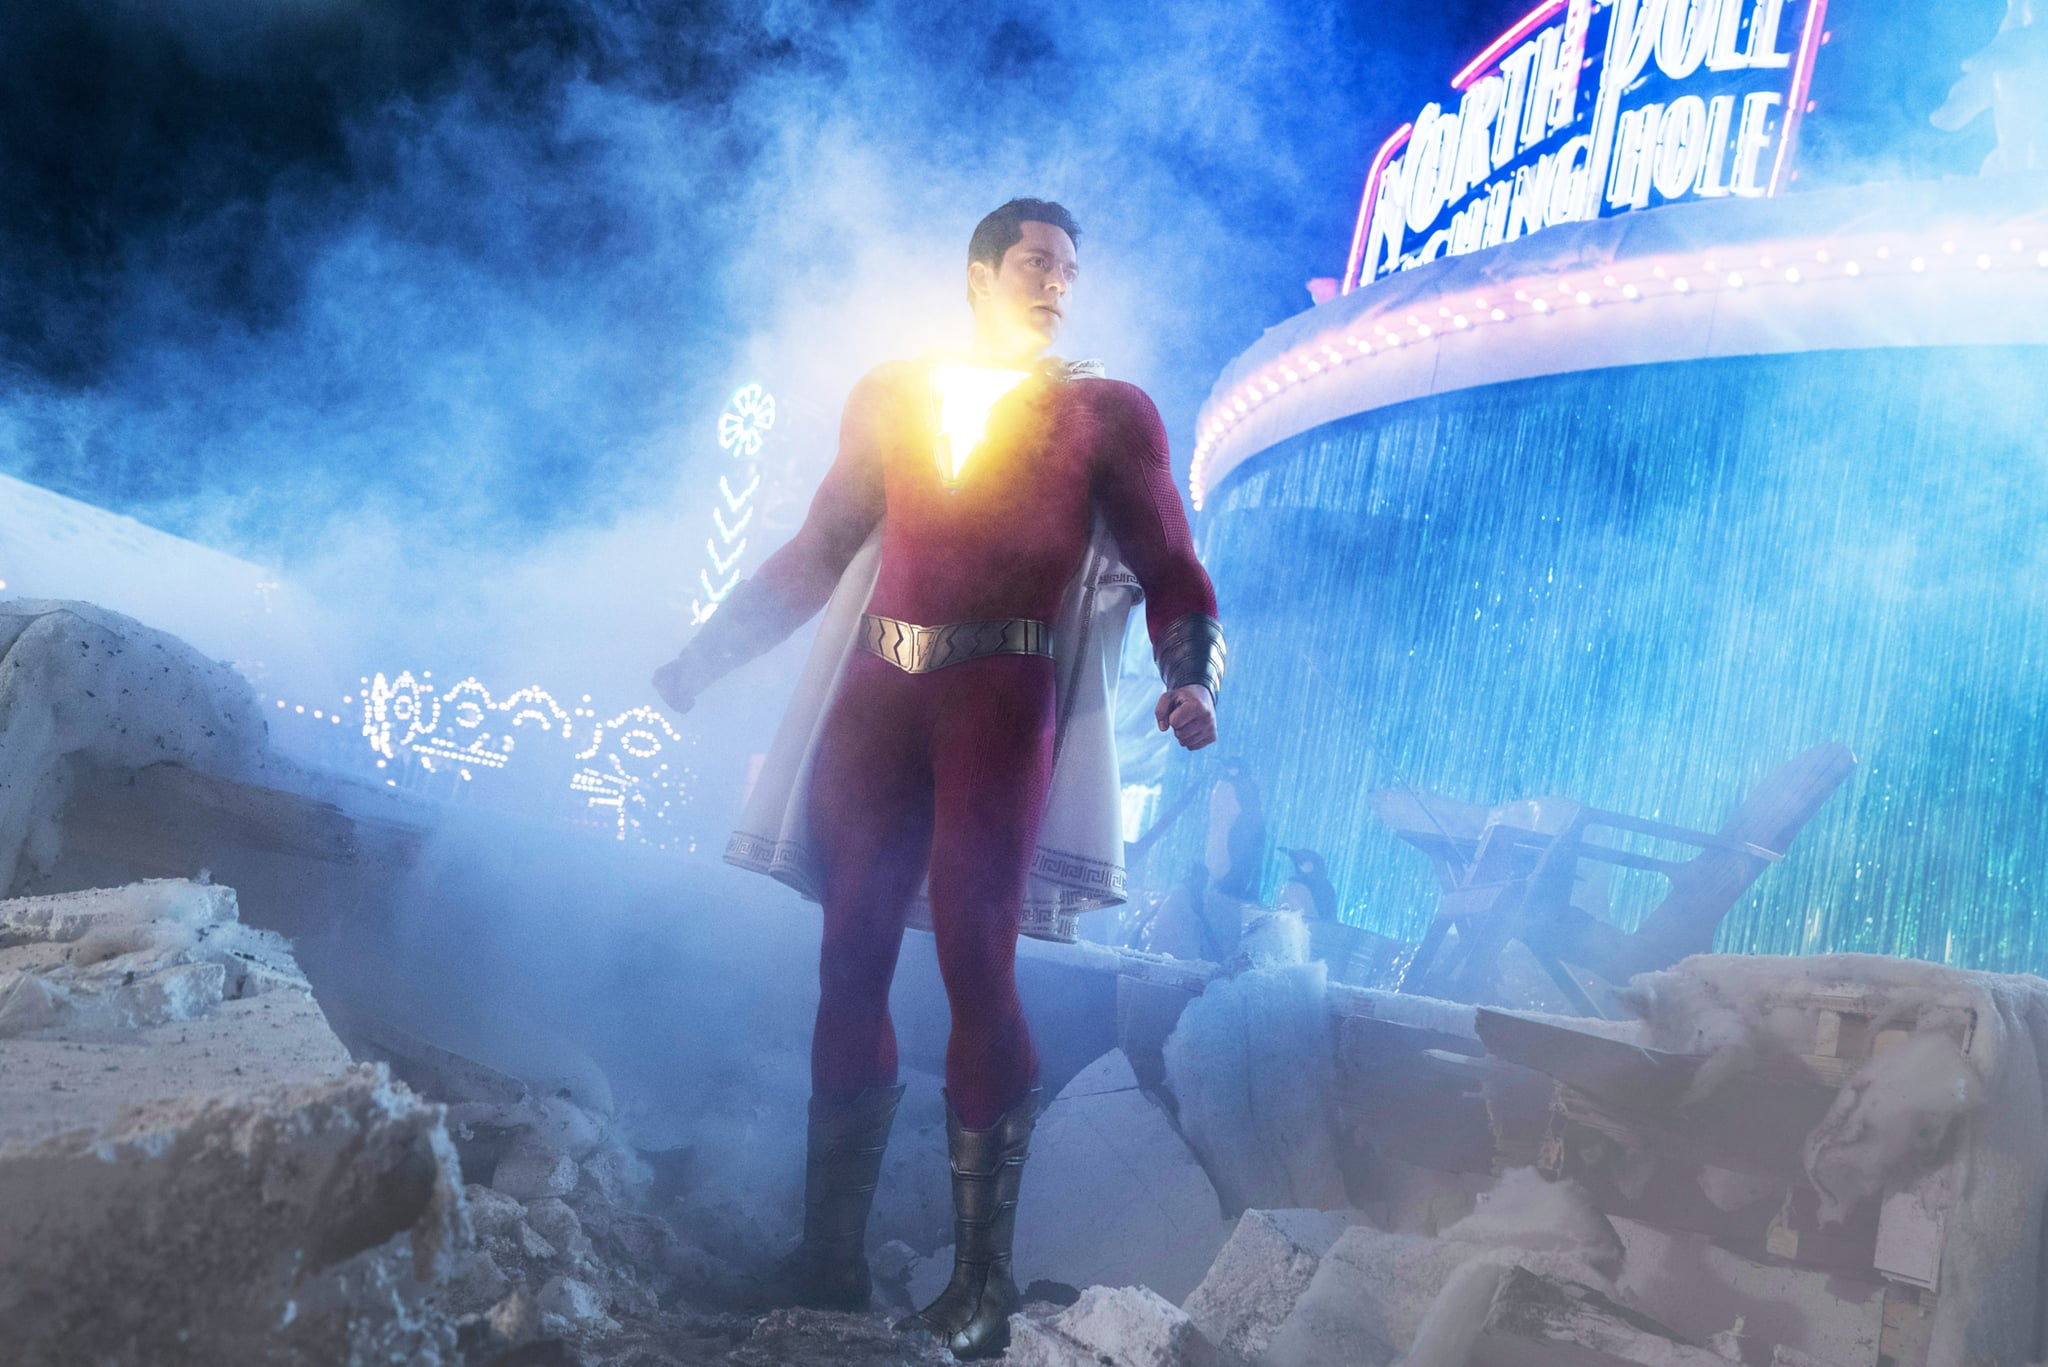 SHAZAM!, Zachary Levi (as Shazam), 2019. ph: Steve Wilkie /  Warner Brothers / Courtesy Everett Collection